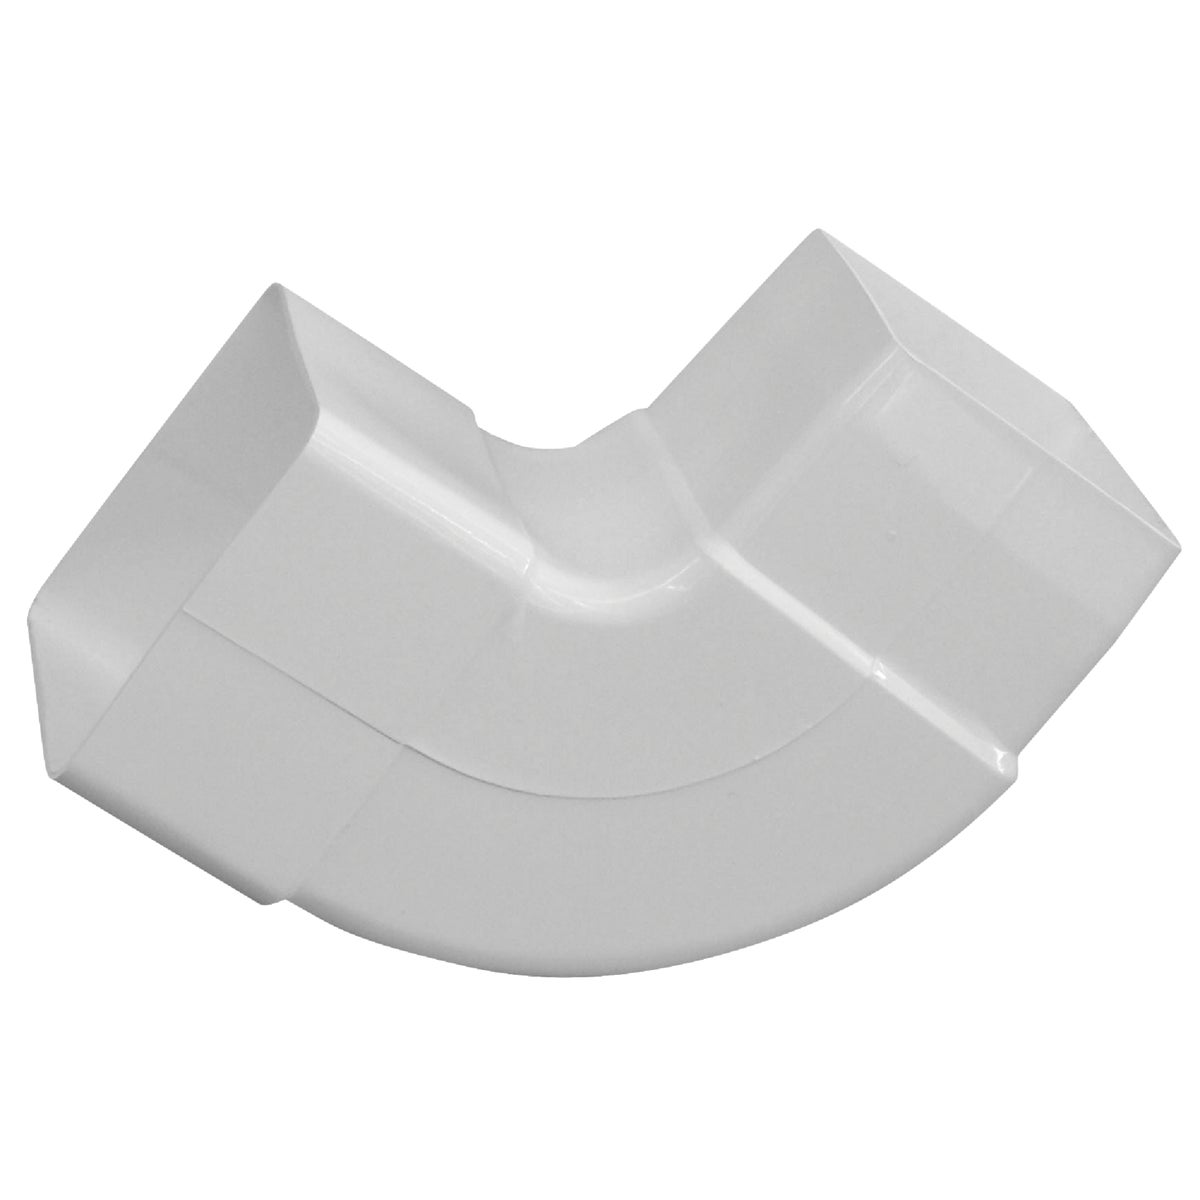 WHT 90DG DOWNSPOUT ELBOW - RW209 by Genova Products